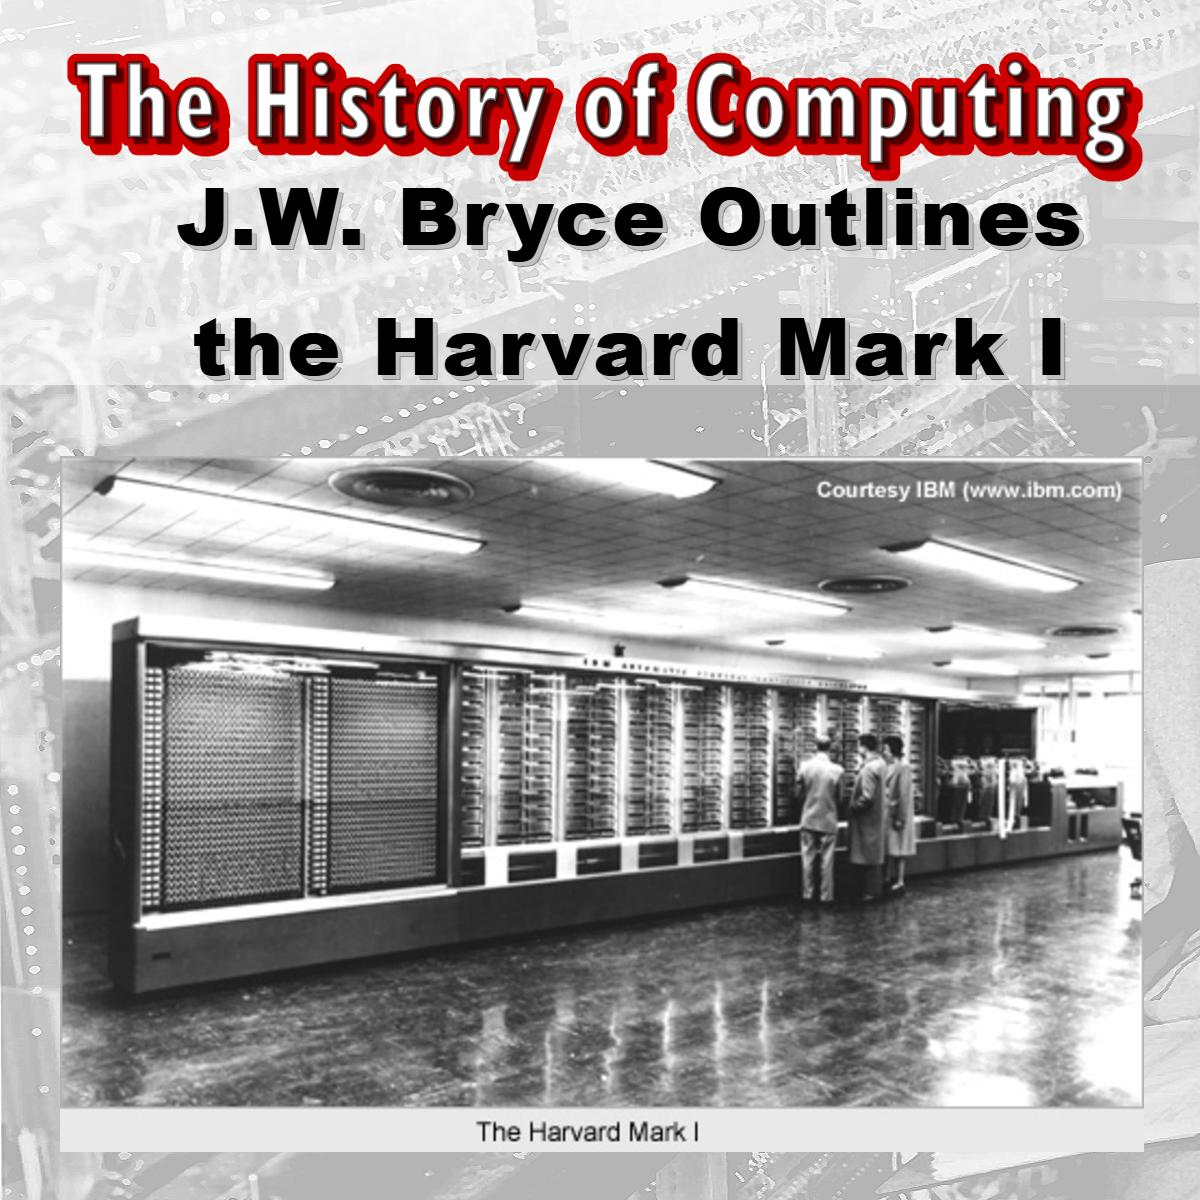 J.W. Bryce Outlines the Harvard Mark I